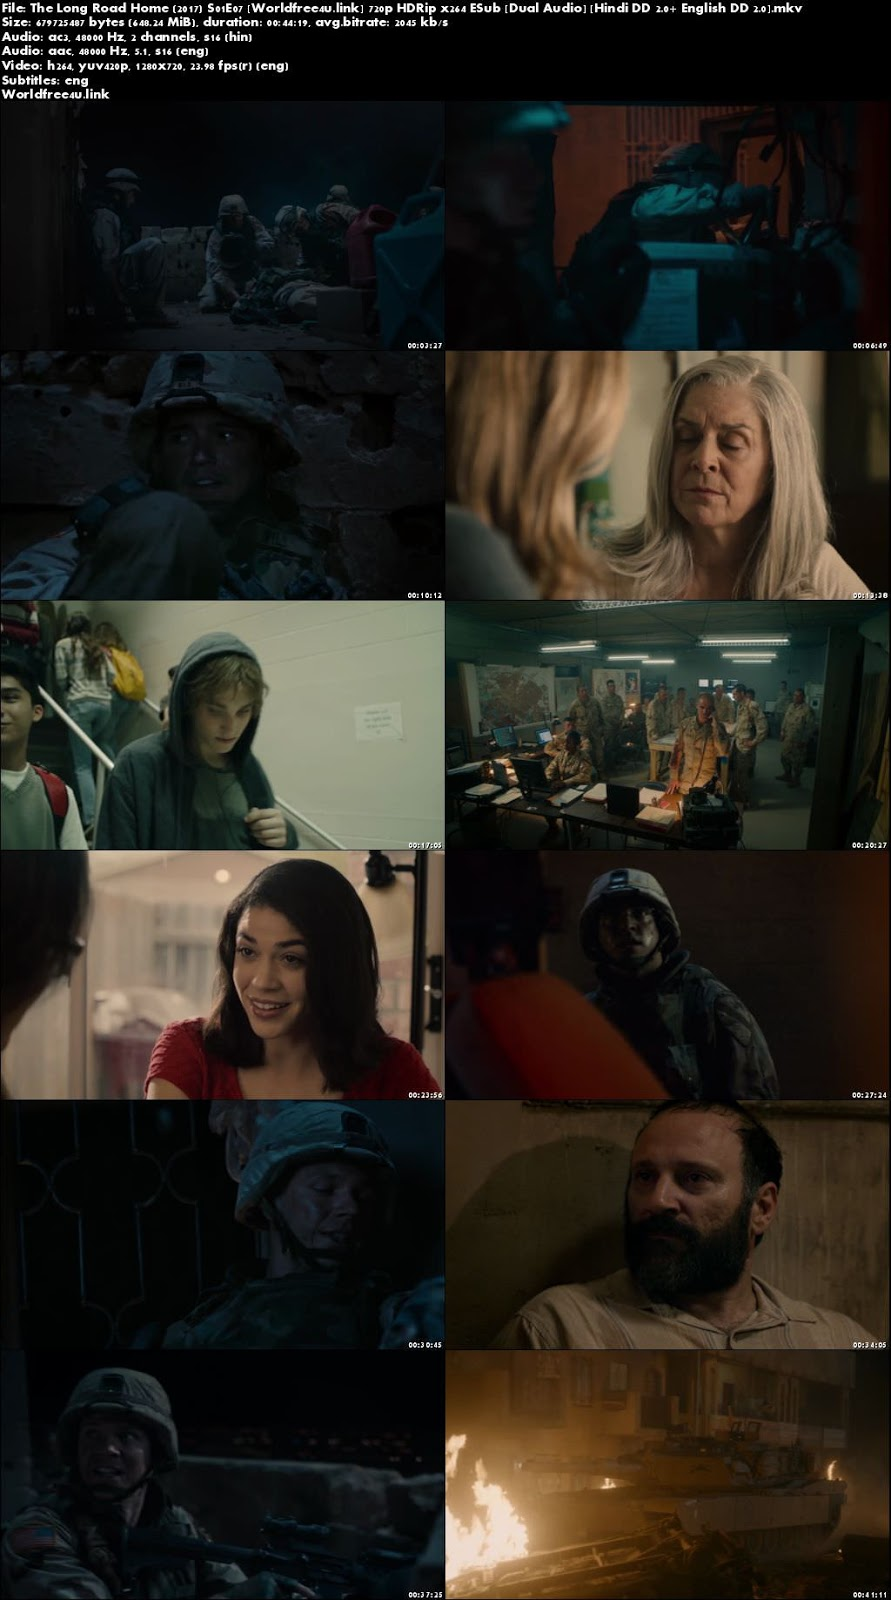 Screen Shoot of The Long Road Home 2017 S01E07 HDRip 720p Dual Audio Hindi English ESub